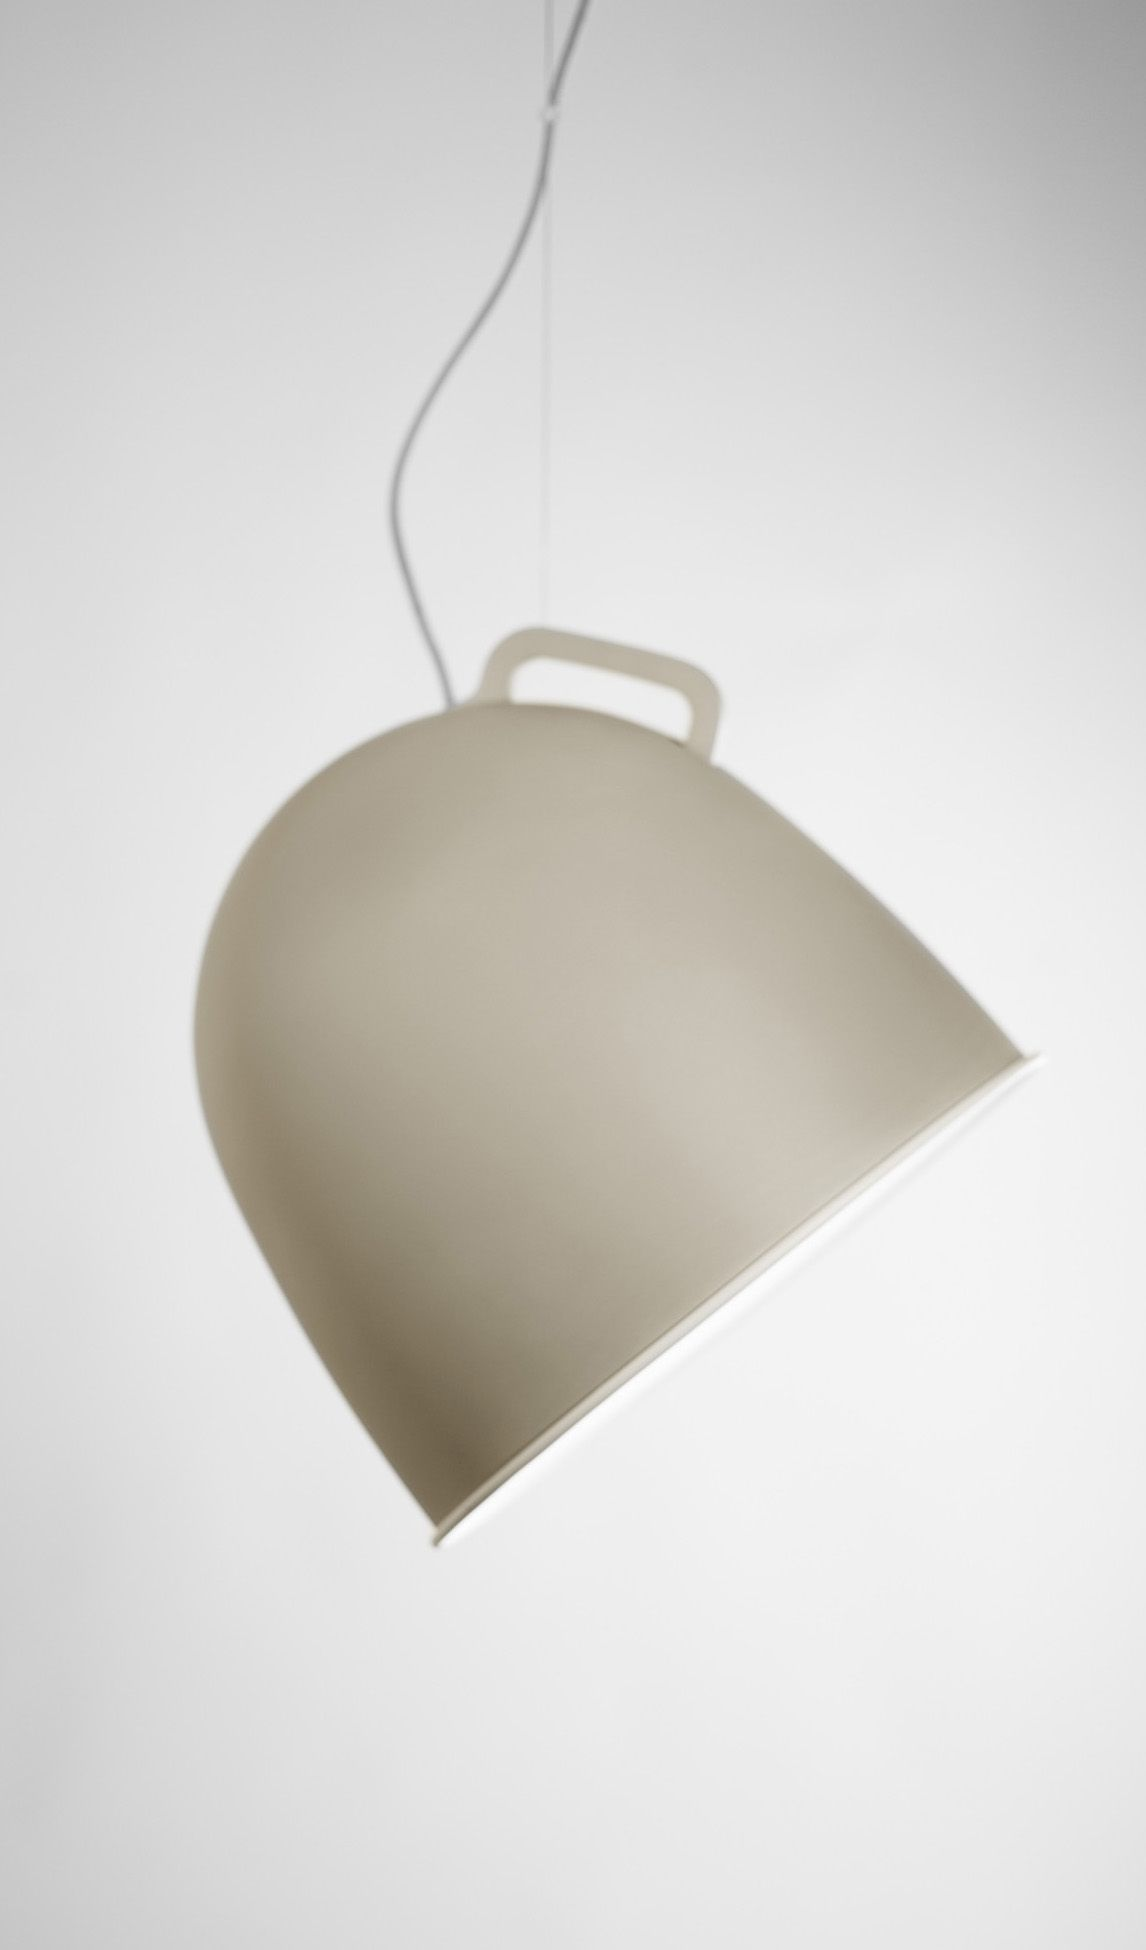 Scout Lamp By Stone Designs For B Lux Lighting Lamparas